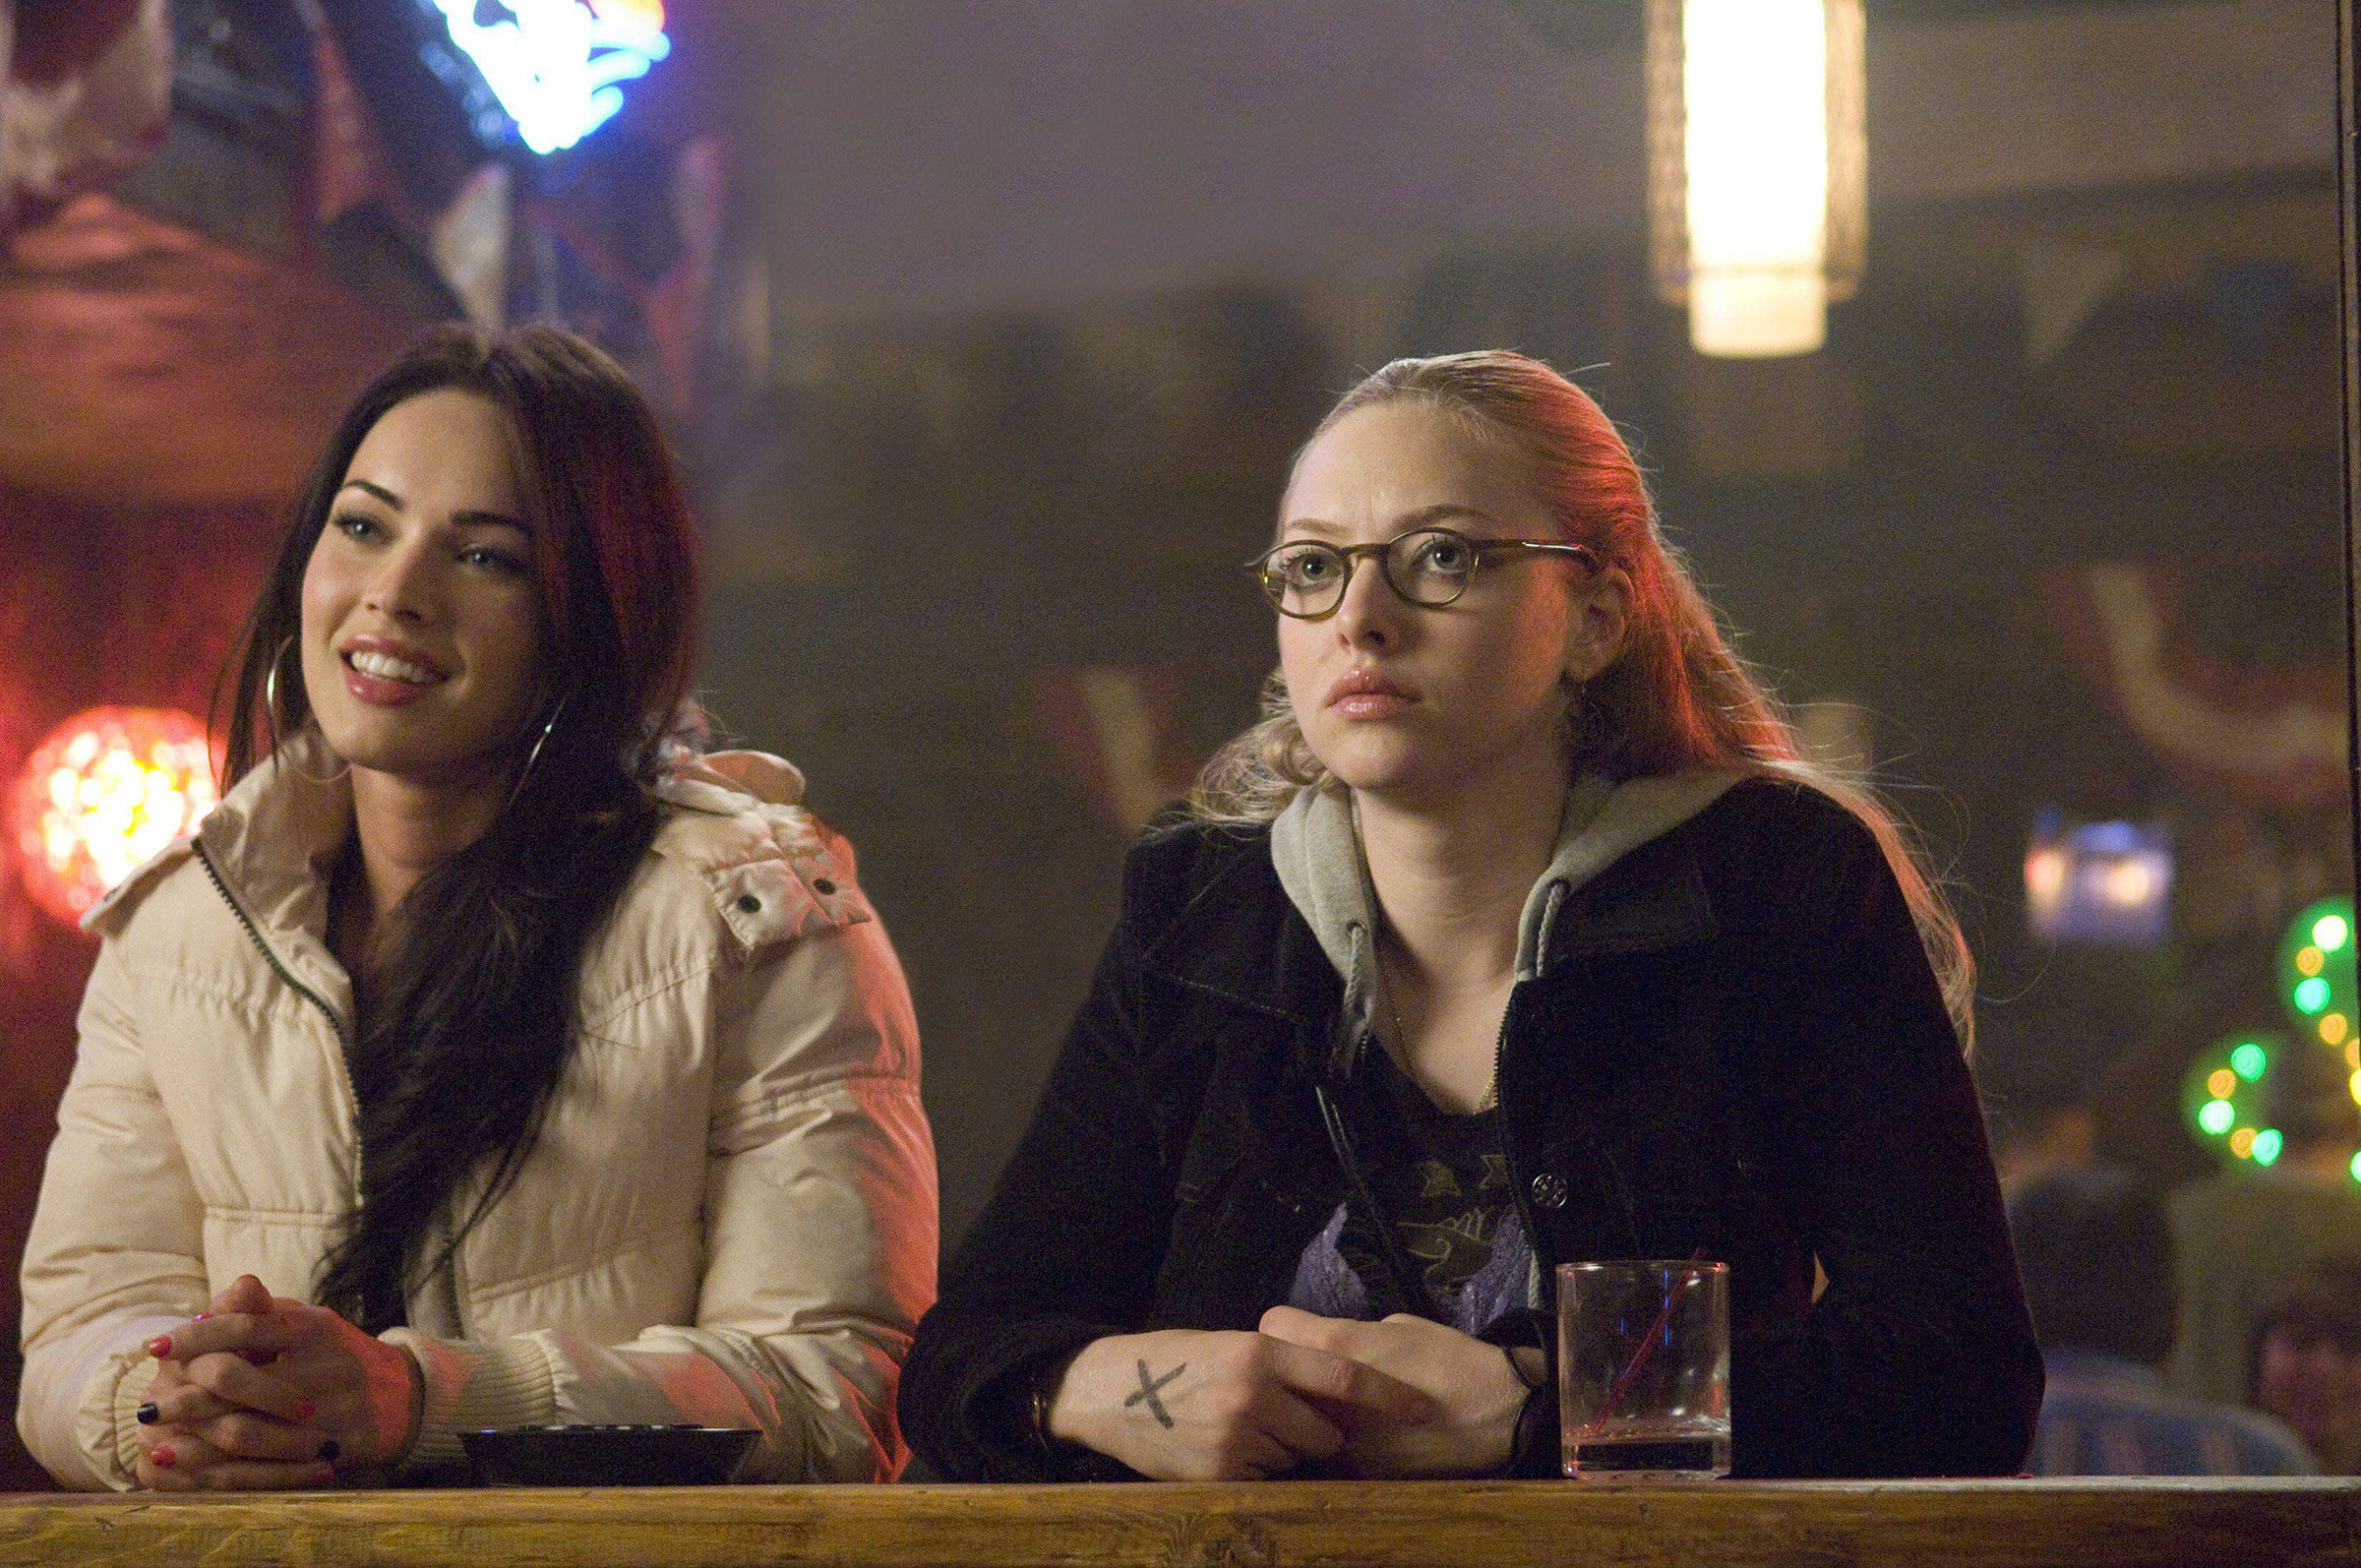 Megan Fox and Amanda Seyfried in the movie jennifers body. in the movie they are both at a bar.